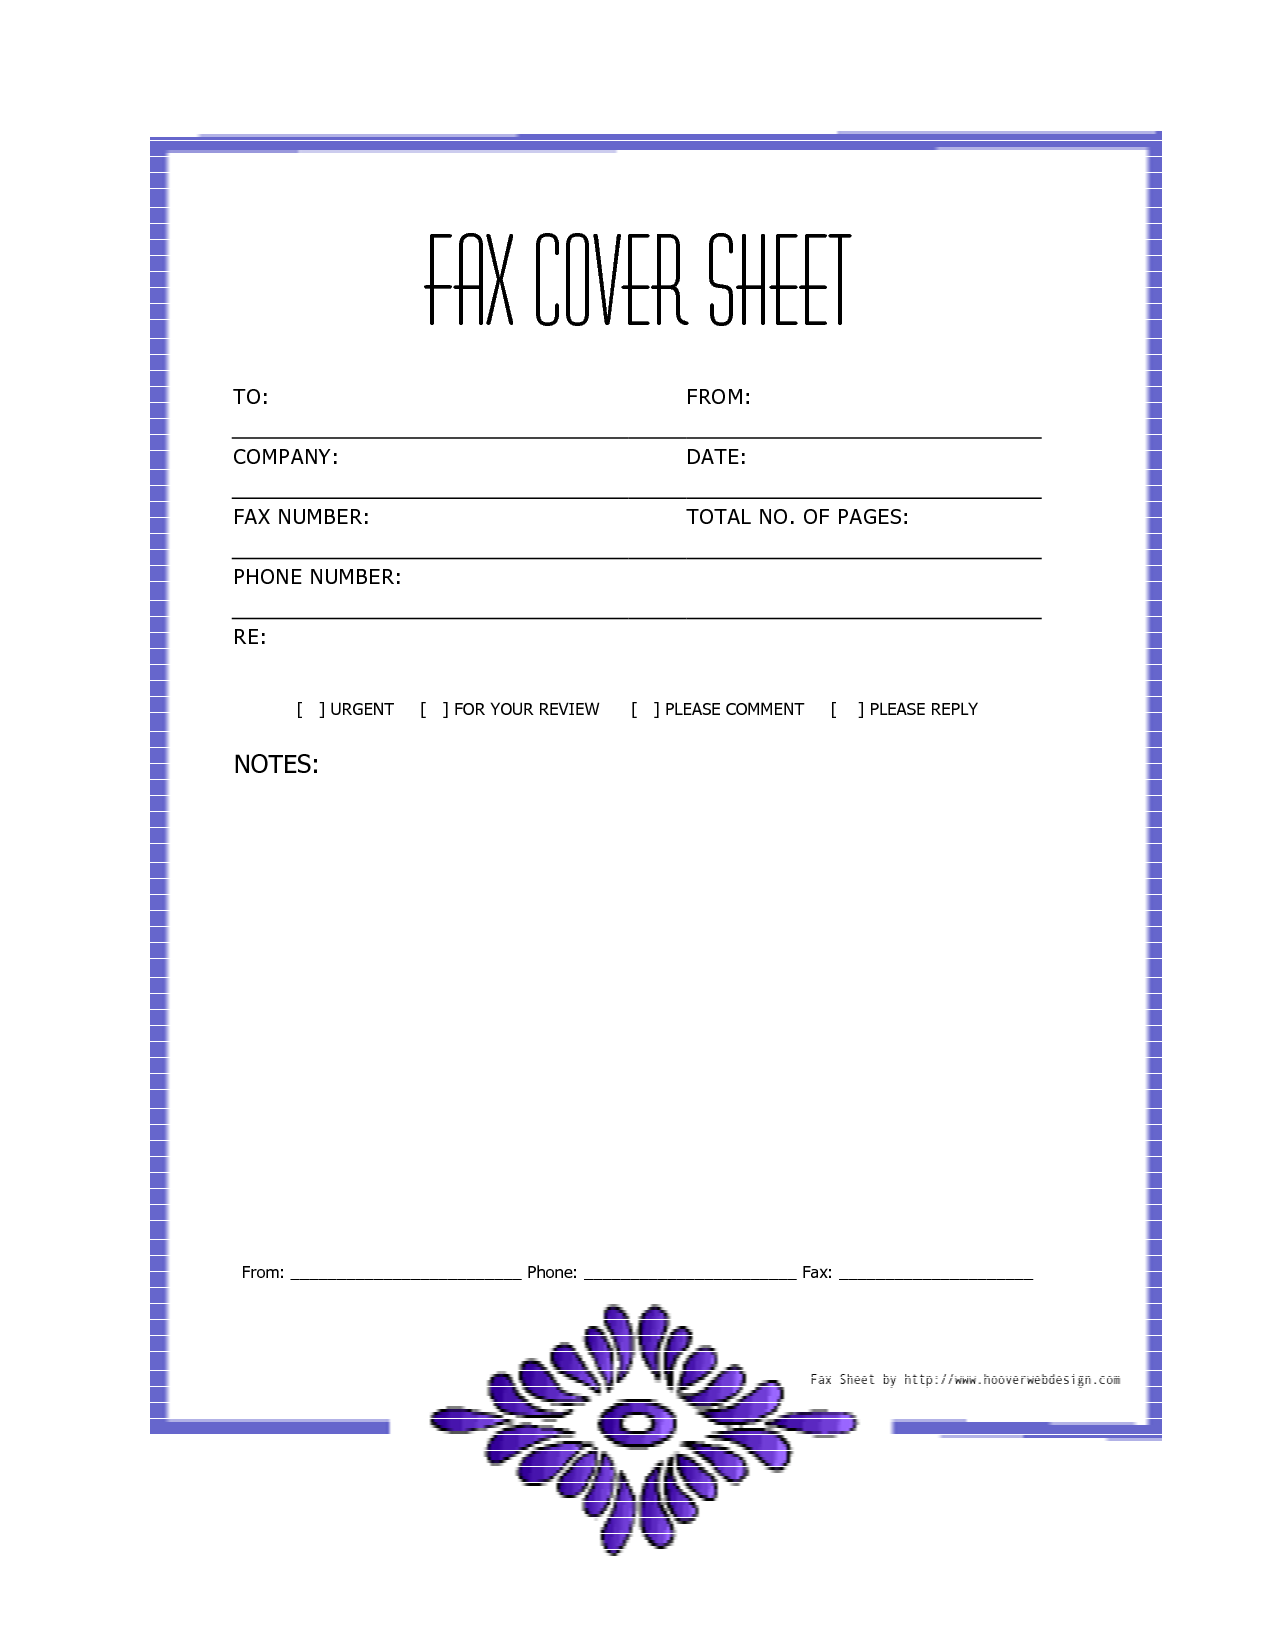 Free downloads fax covers sheets free printable fax cover sheet free downloads fax covers sheets free printable fax cover sheet template elegant download as madrichimfo Image collections